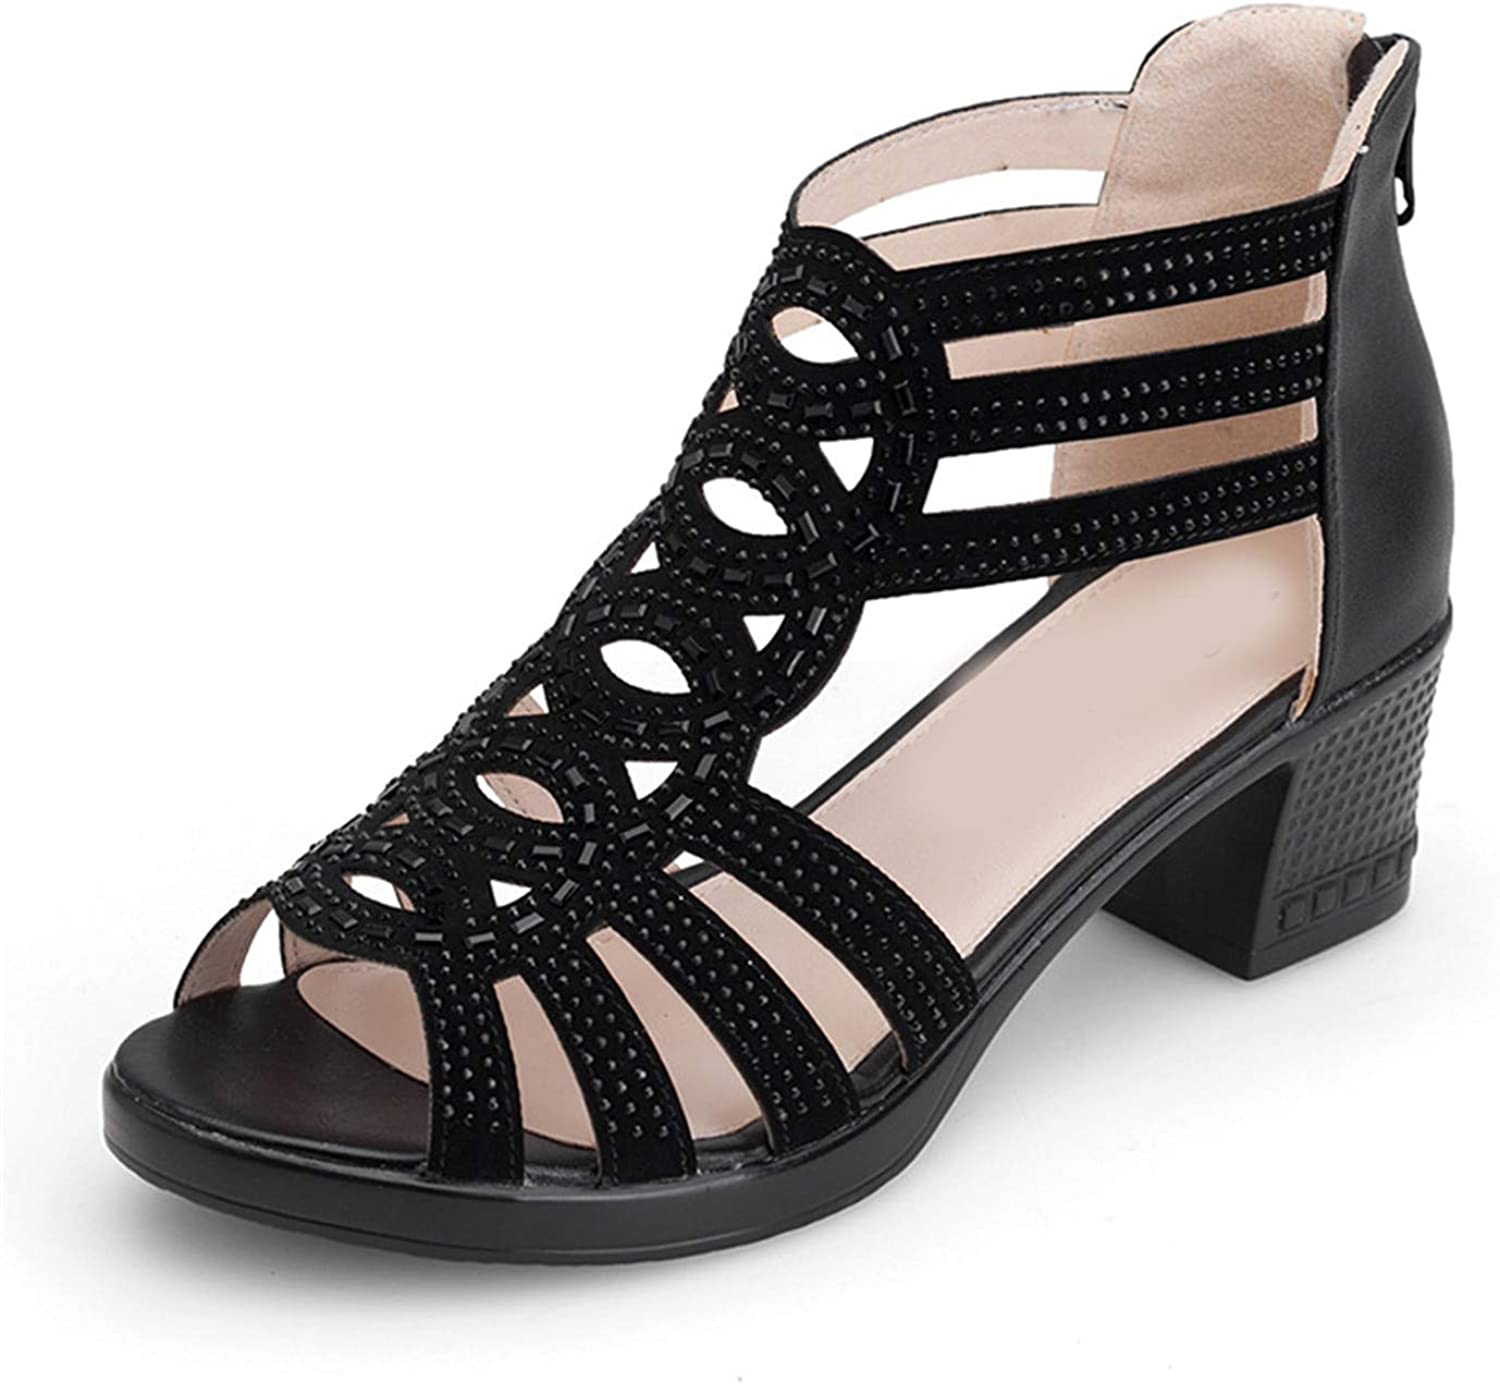 Low-Heeled Middle-Aged Women's shoes in Summer Comfortable with Roman shoes Non-Slip Mother Sandals